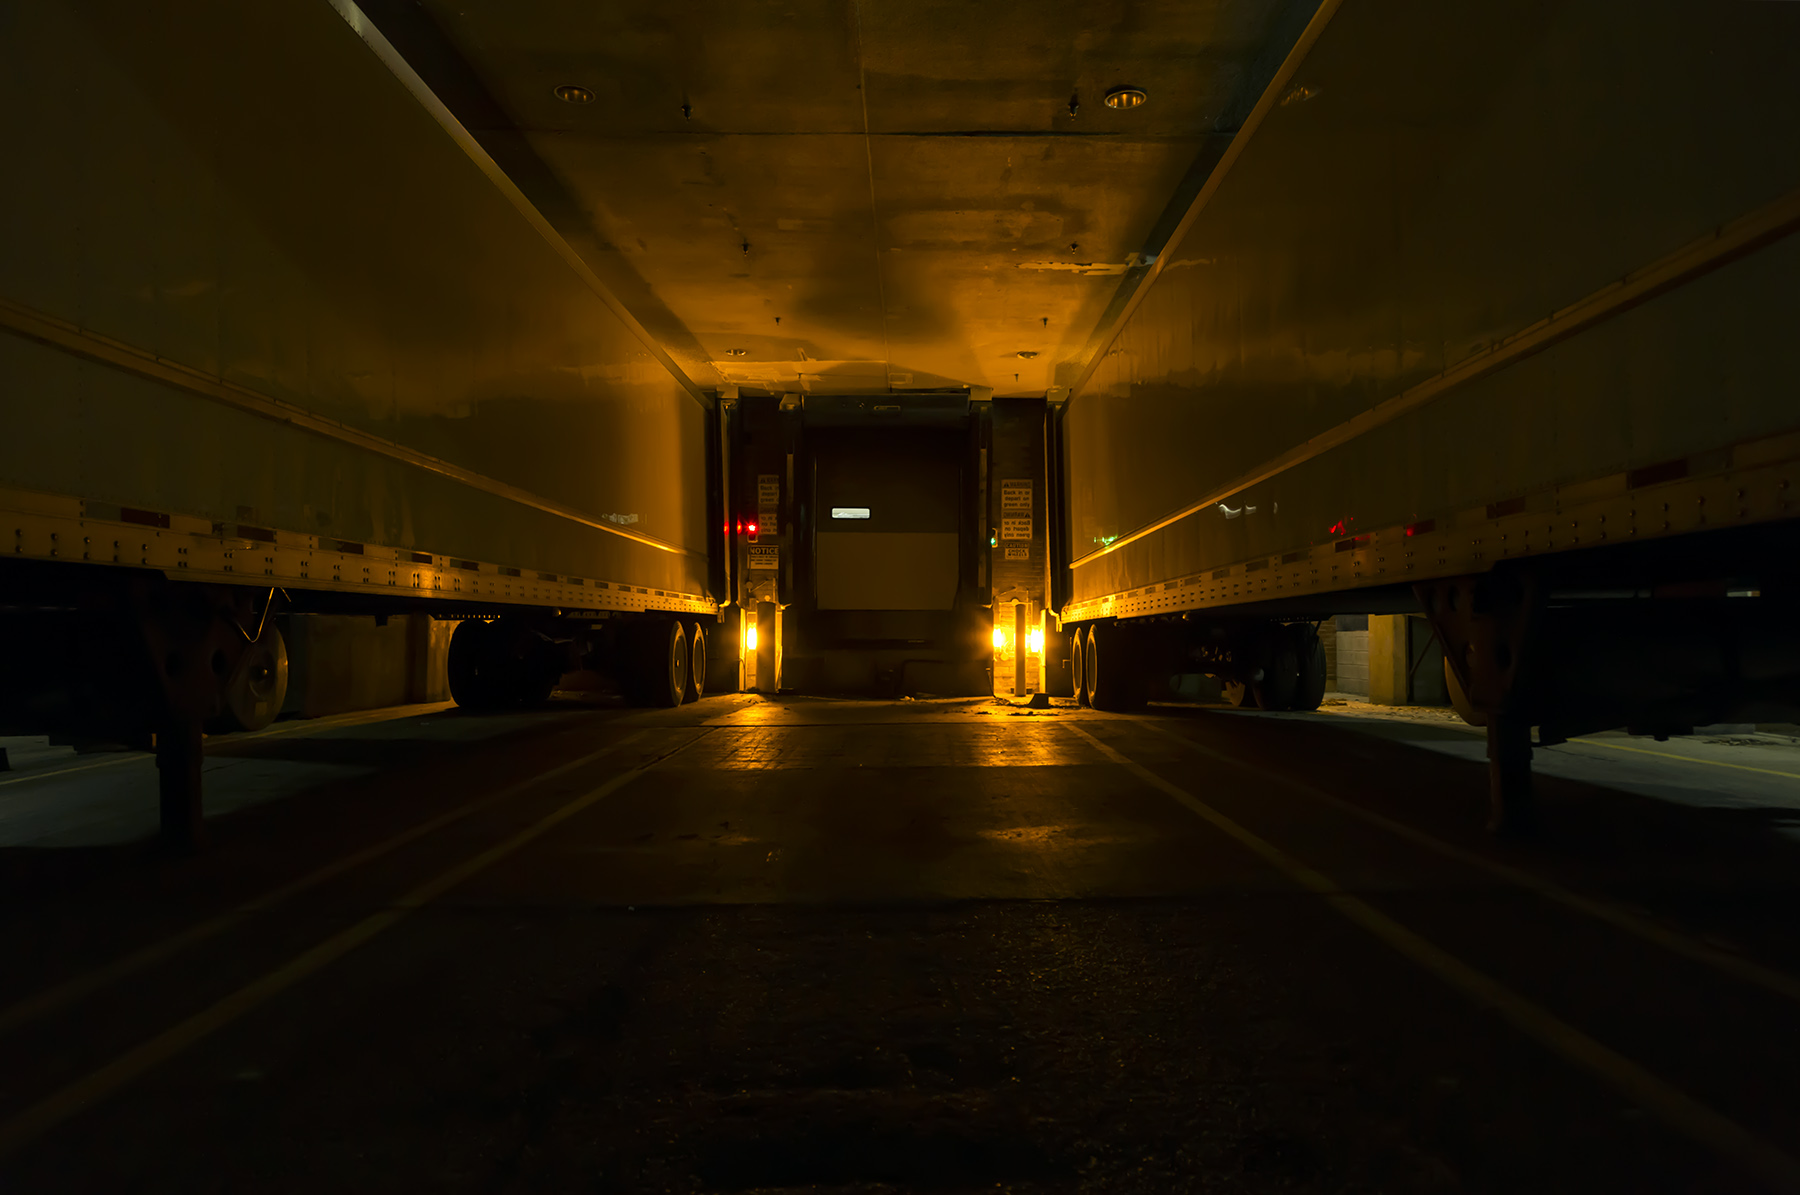 20151221. In a Toronto chocolate factory loading bay at night.